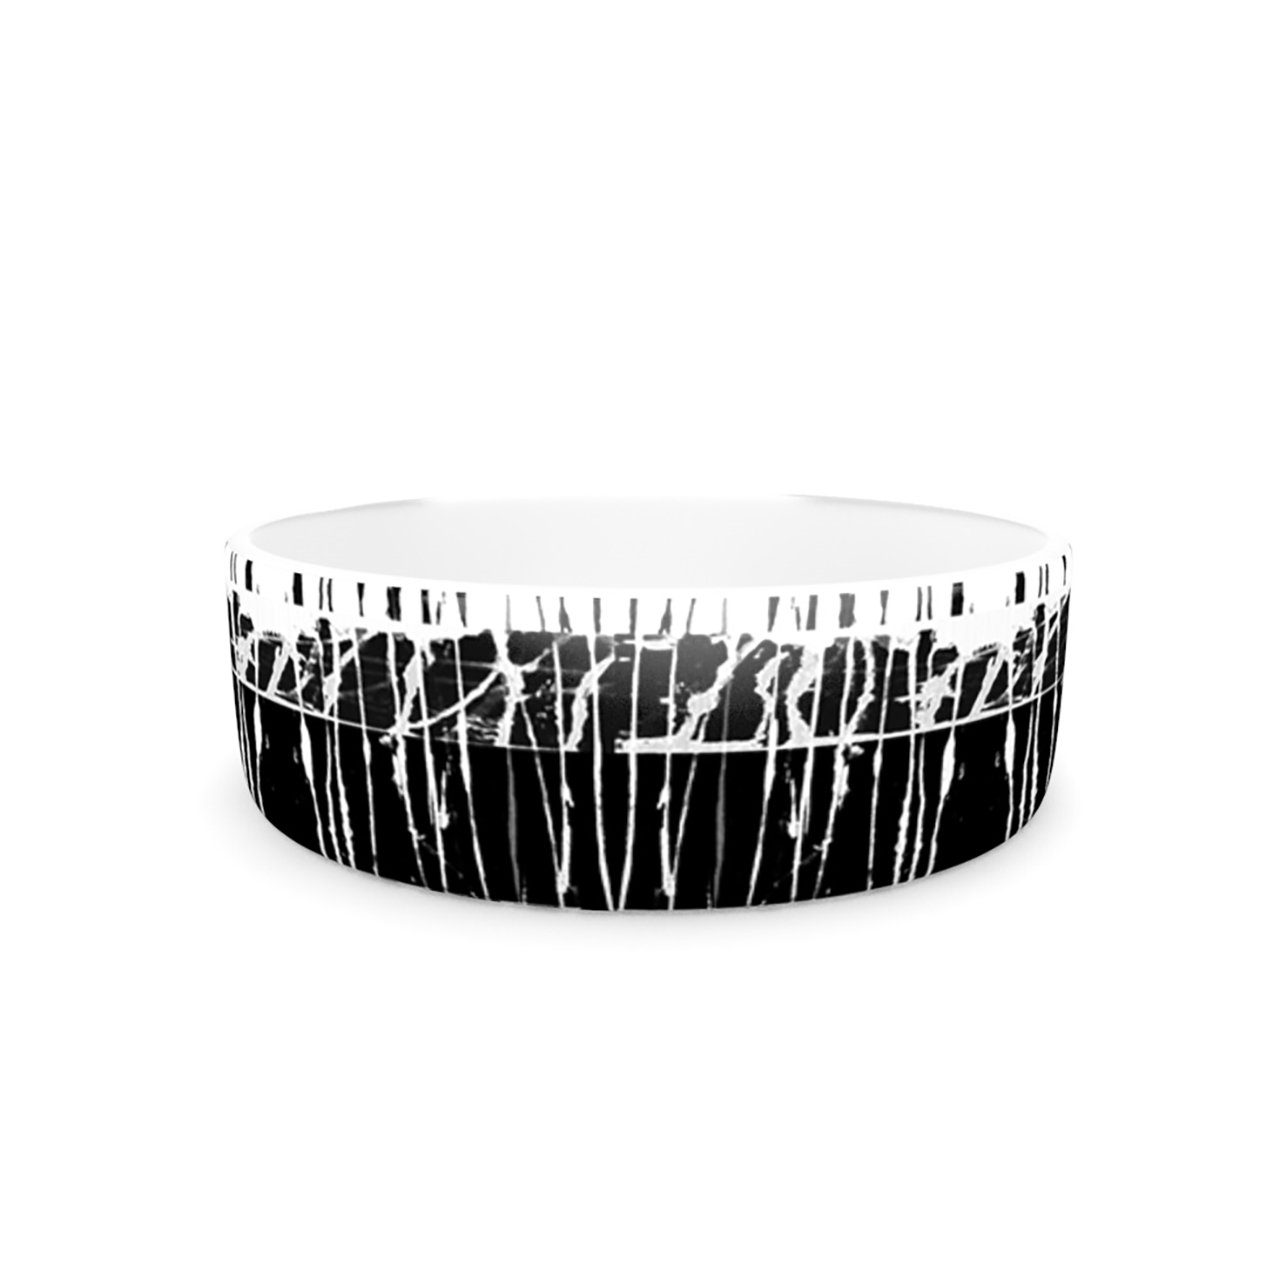 Kess InHouse Nina May Century City Splatter  Pet Bowl, 7-Inch, Black White